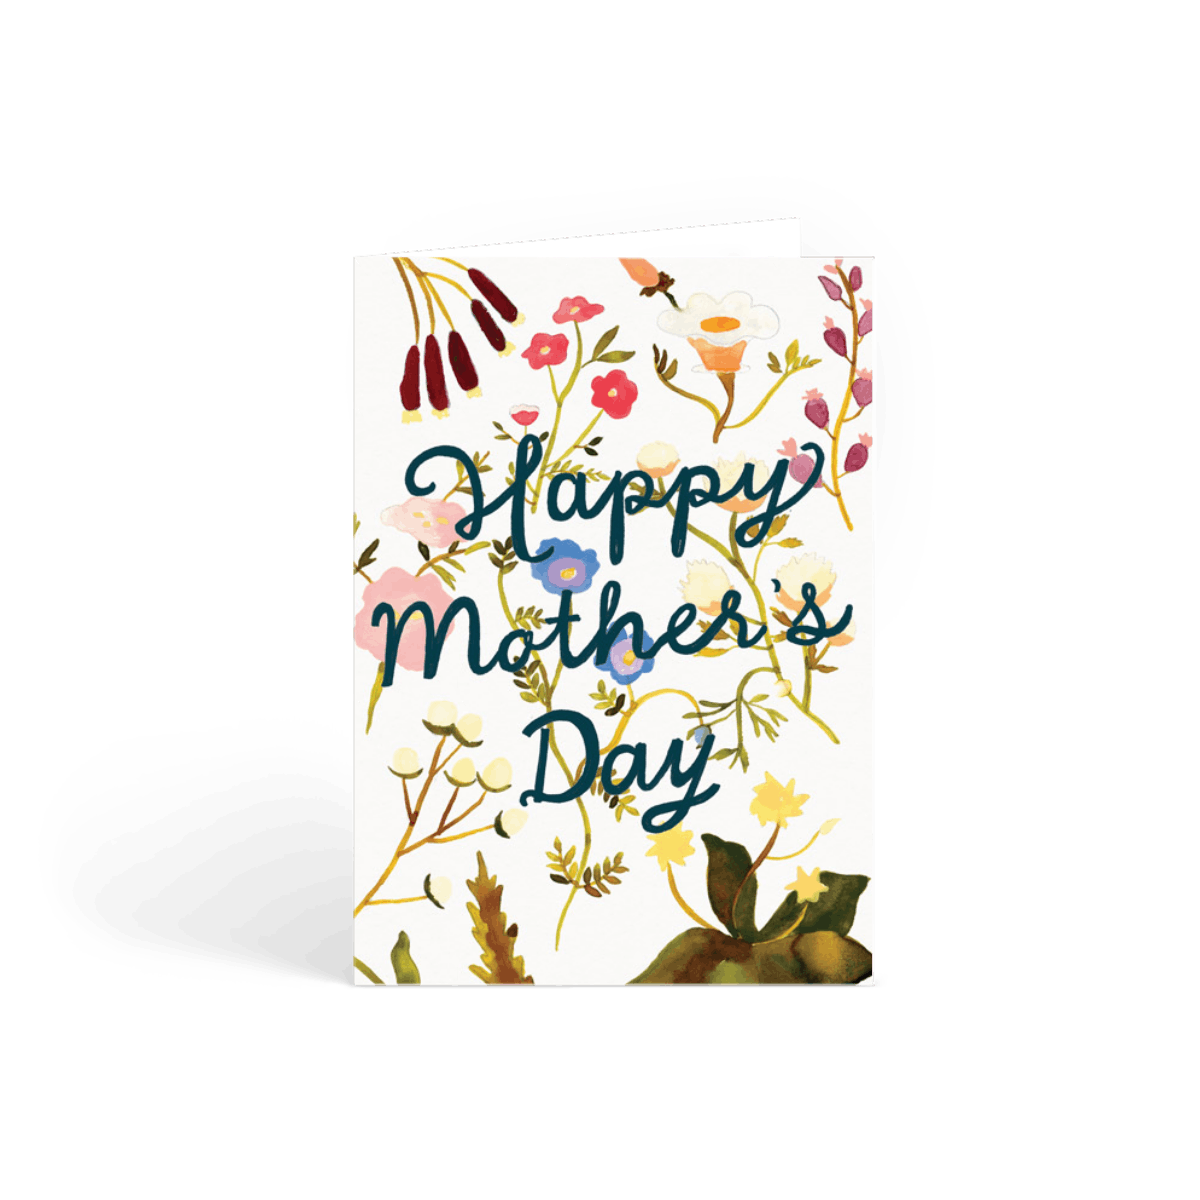 Https%3a%2f%2fwww.papier.com%2fproduct image%2f16936%2f2%2fmother s day wildflowers 4455 avant 1485271928.png?ixlib=rb 1.1